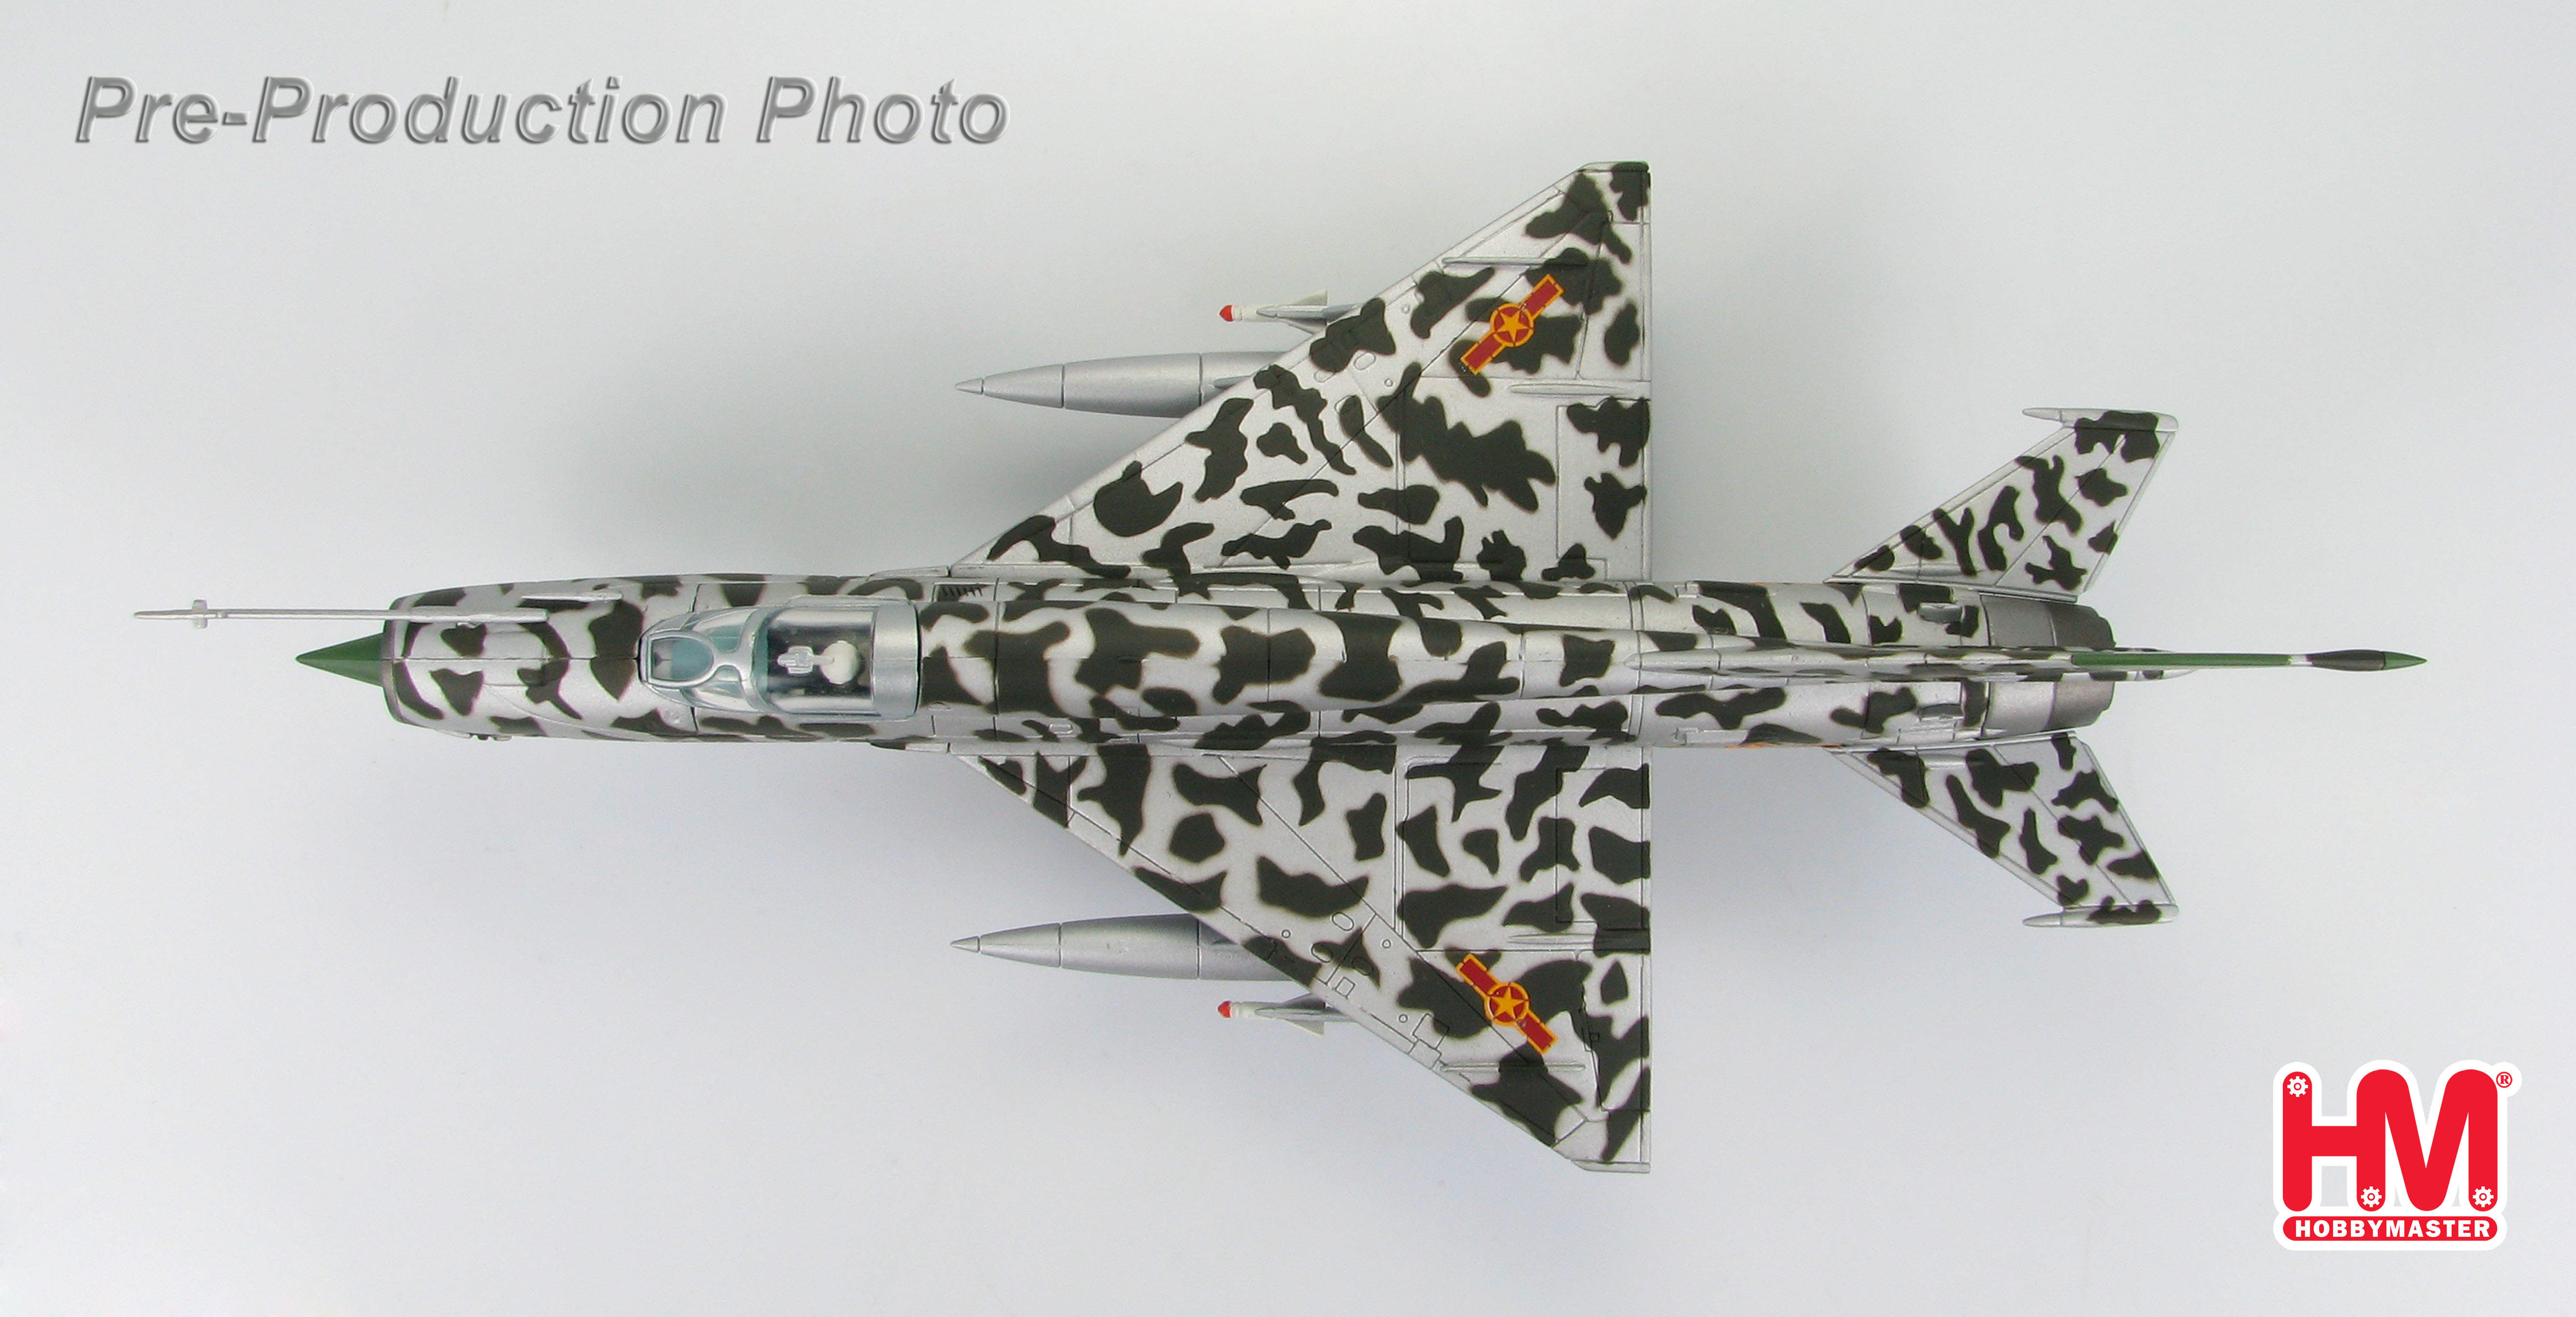 MIG-21 Jet Fighter 5112, Lt. Nguyen Hong My, North Vietnamese Air Force, 1:72